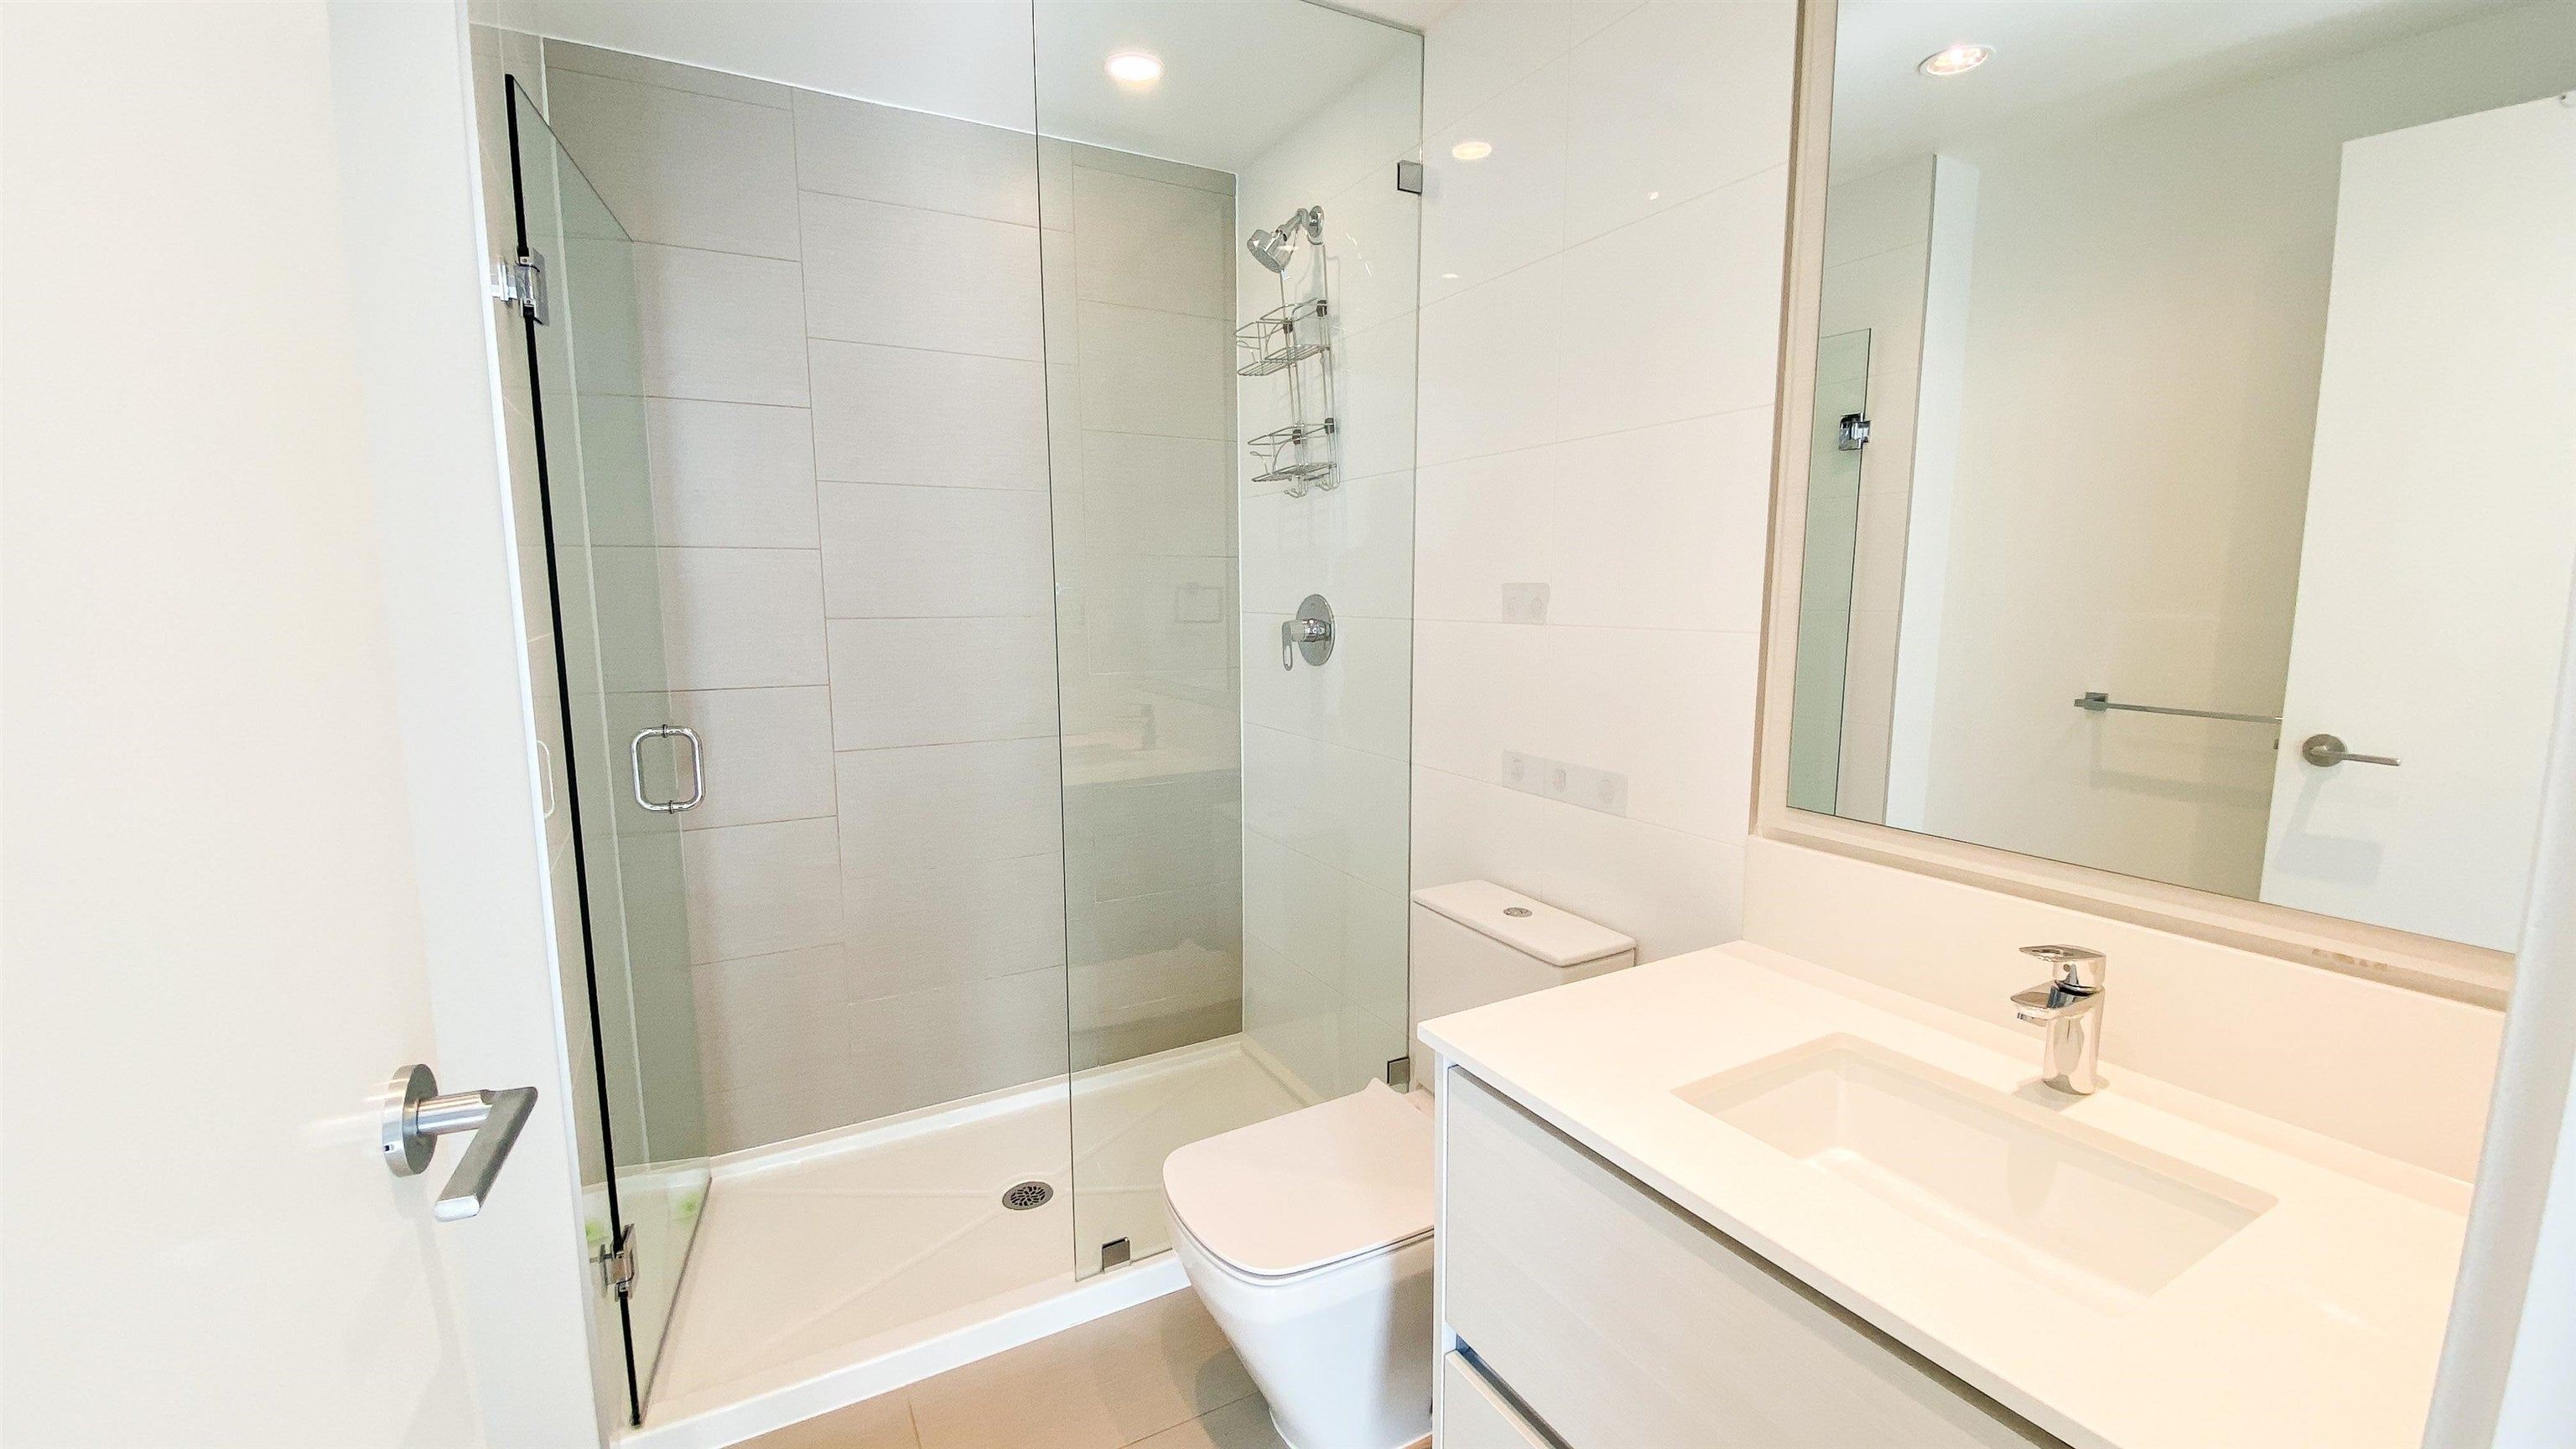 2510 4670 ASSEMBLY WAY - Metrotown Apartment/Condo for sale, 2 Bedrooms (R2625732) - #21